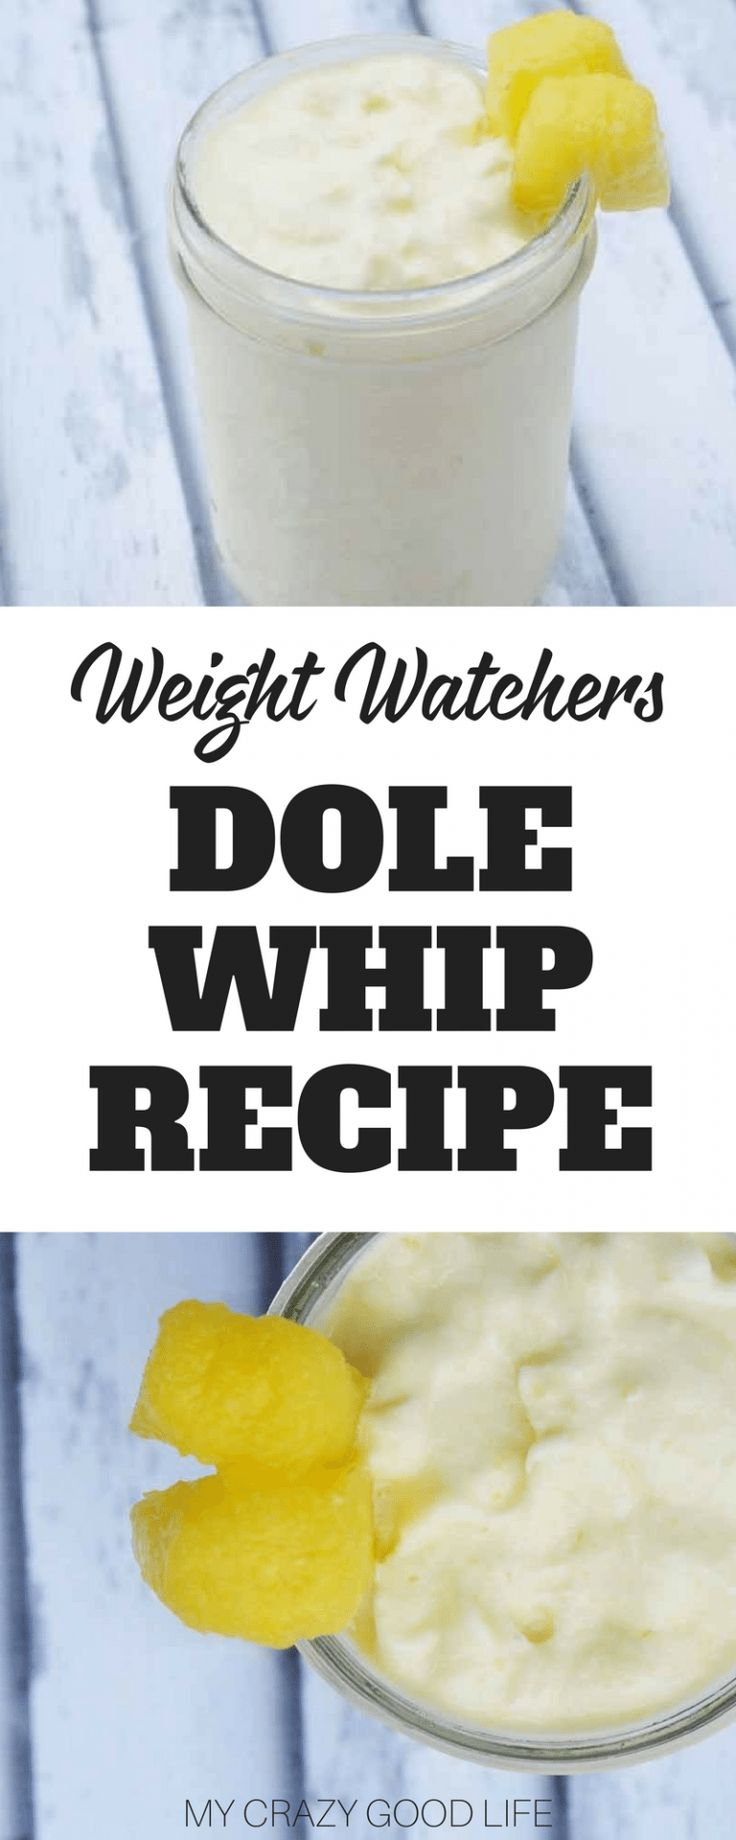 This delicious dole whip Weight Watchers recipe is delicious, creamy, and full of flavor. It's the perfect indulgent treat that you can blend up in no time. #weightwatchers #smartpoints #recipes